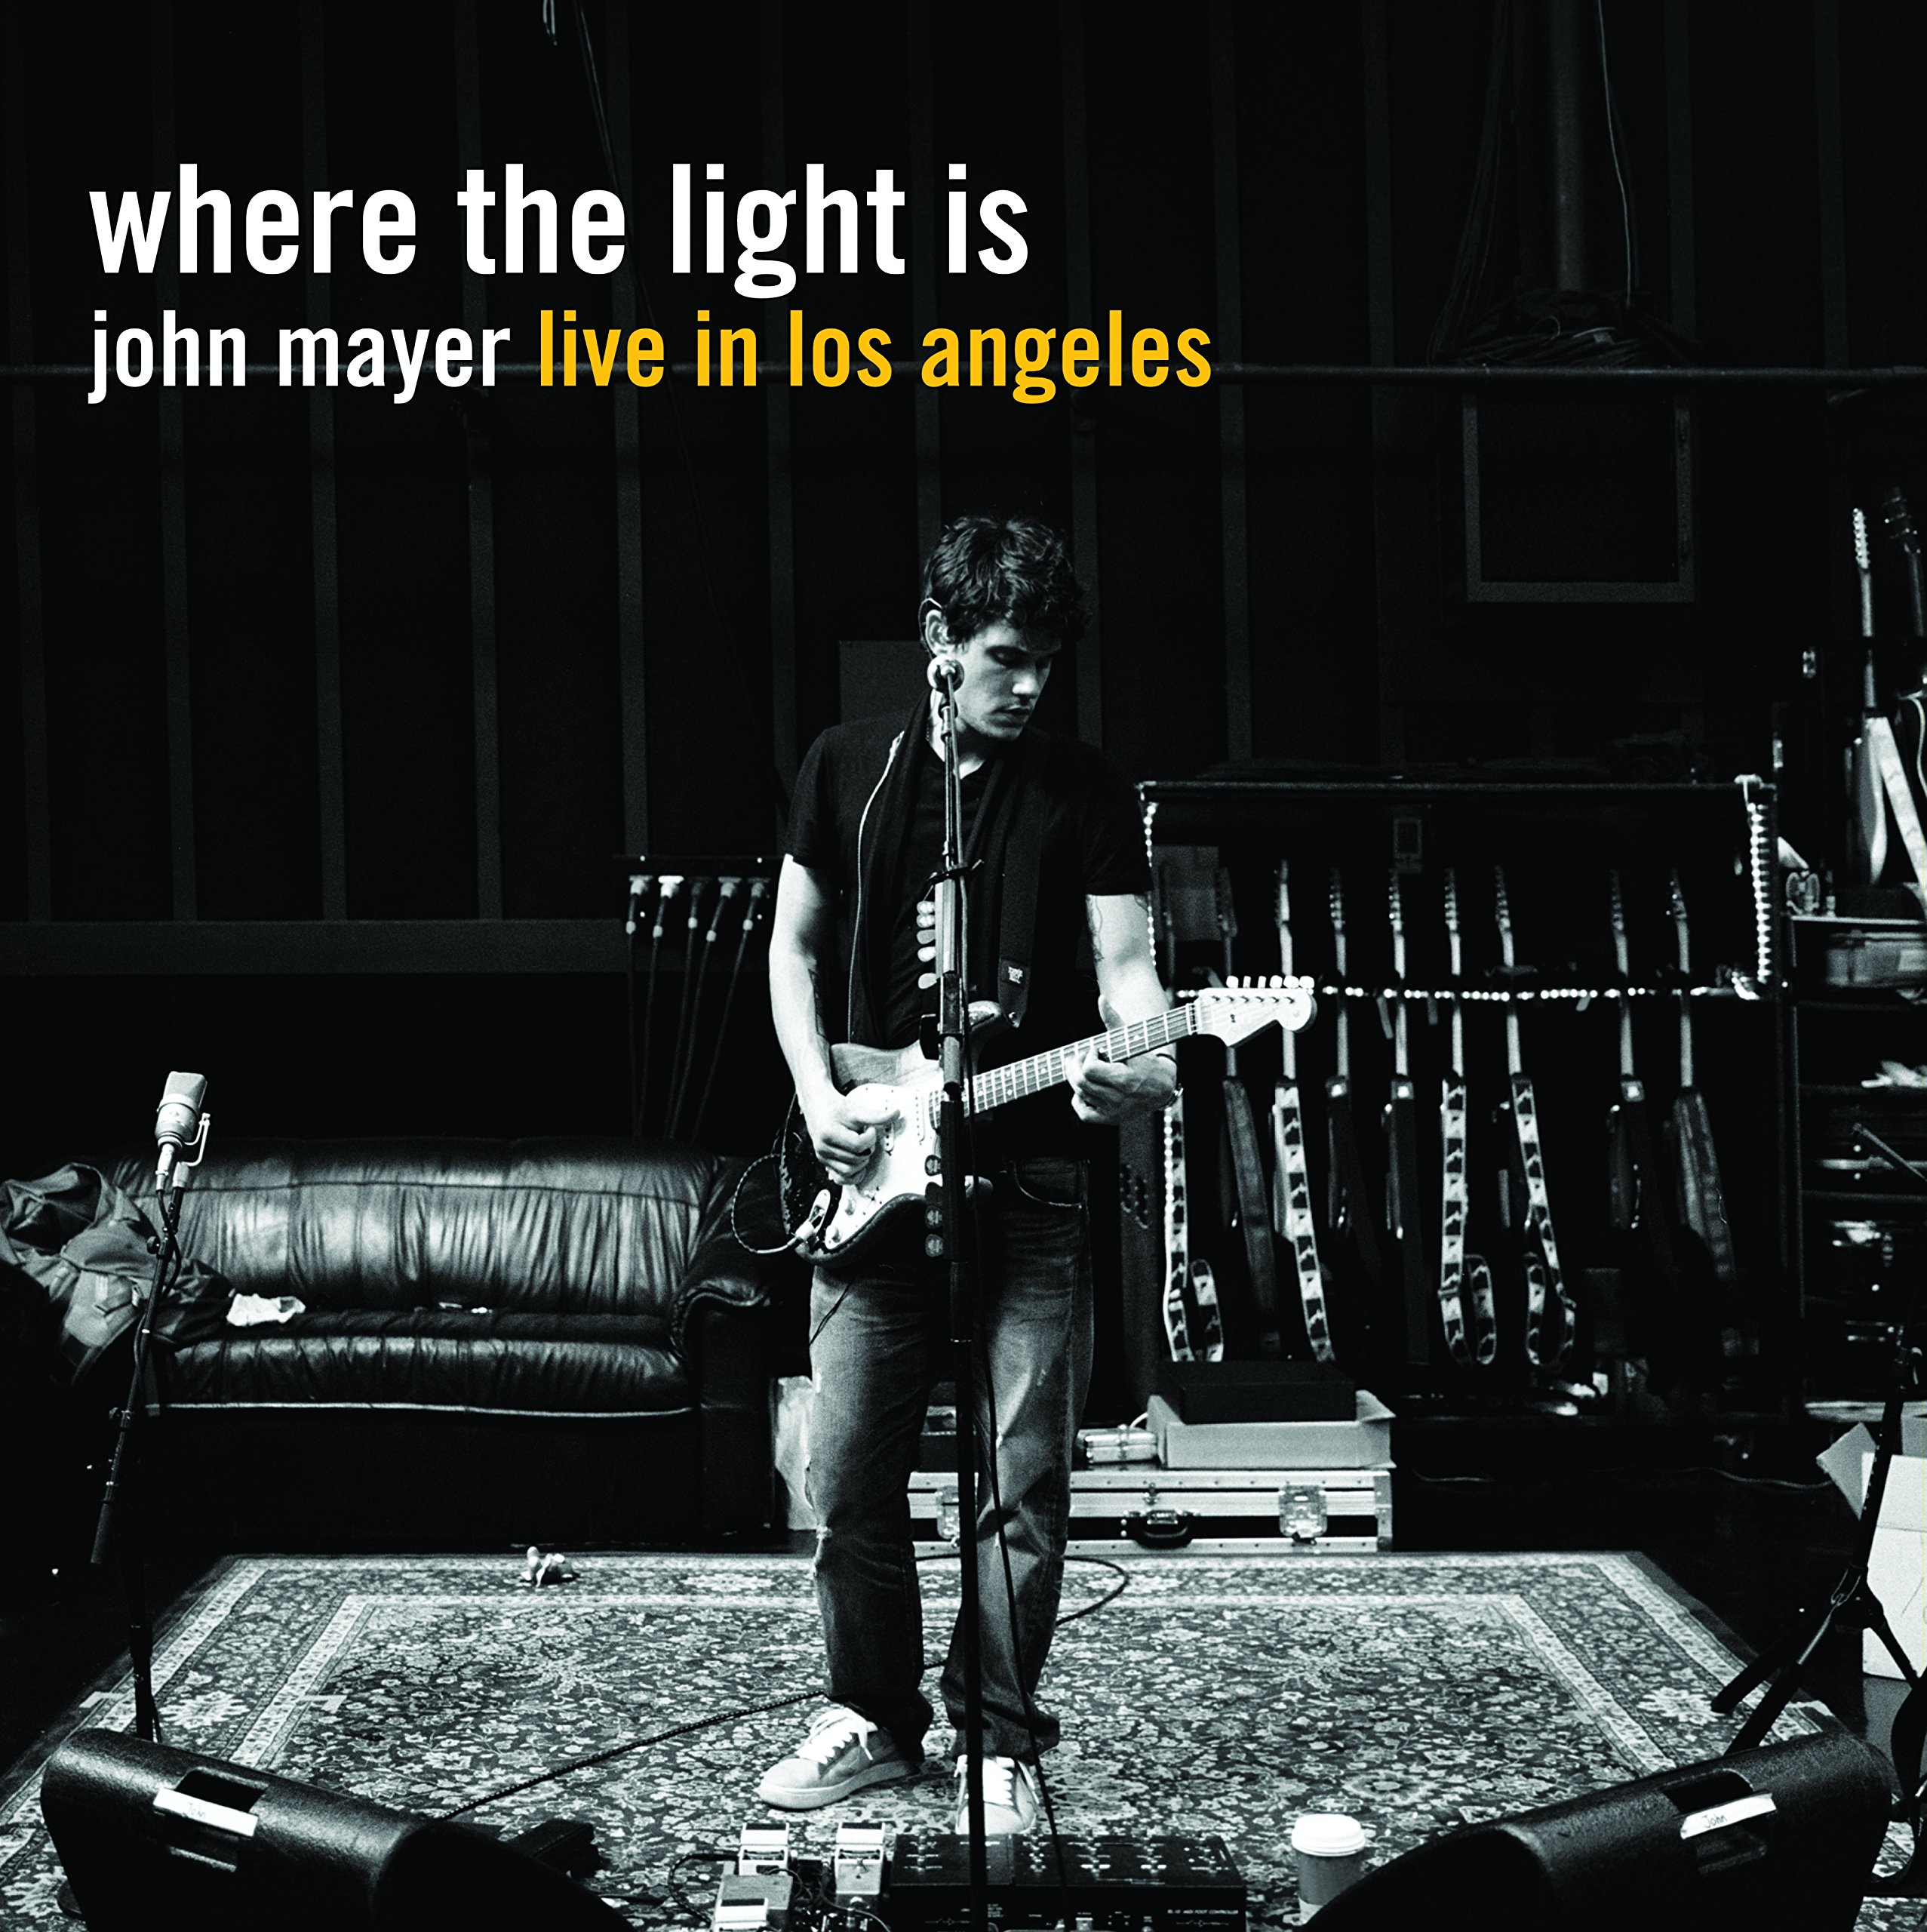 Where The Light Is (Mov Version) by VINYL